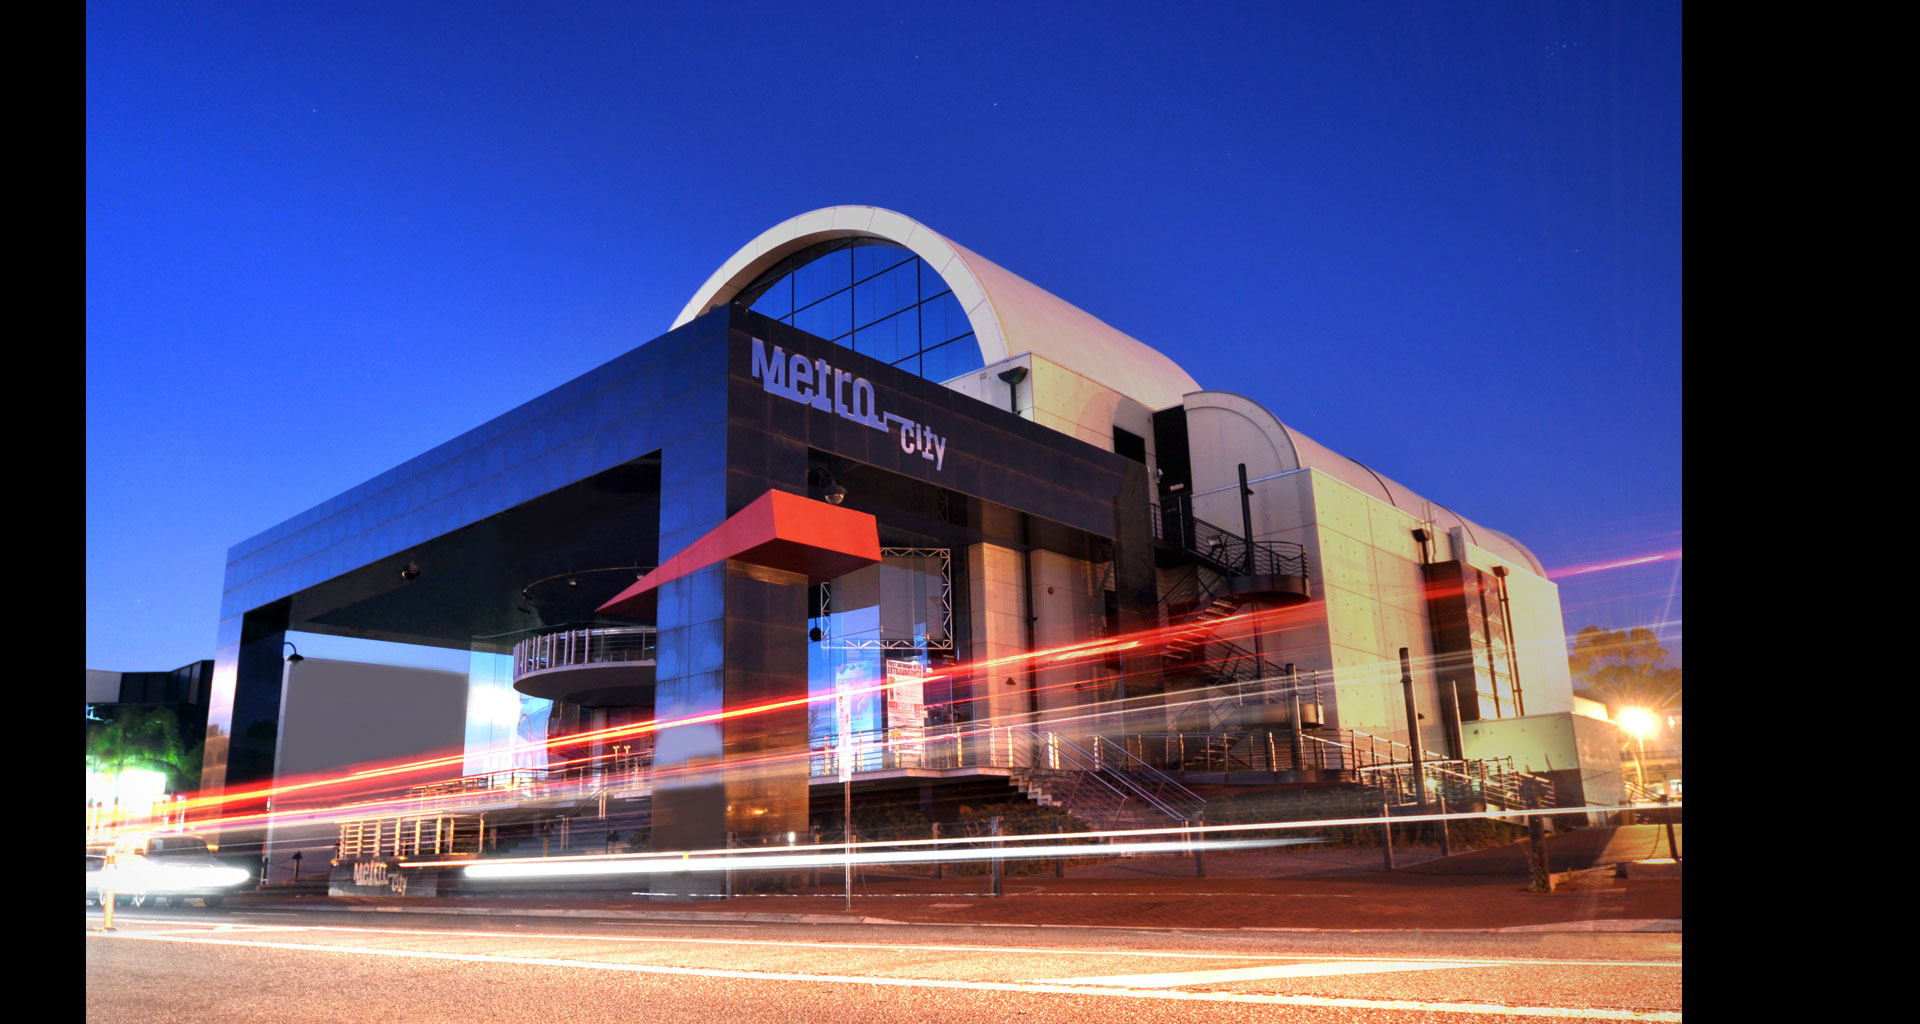 Perth commercial advertising photography metro city night club in northbridge